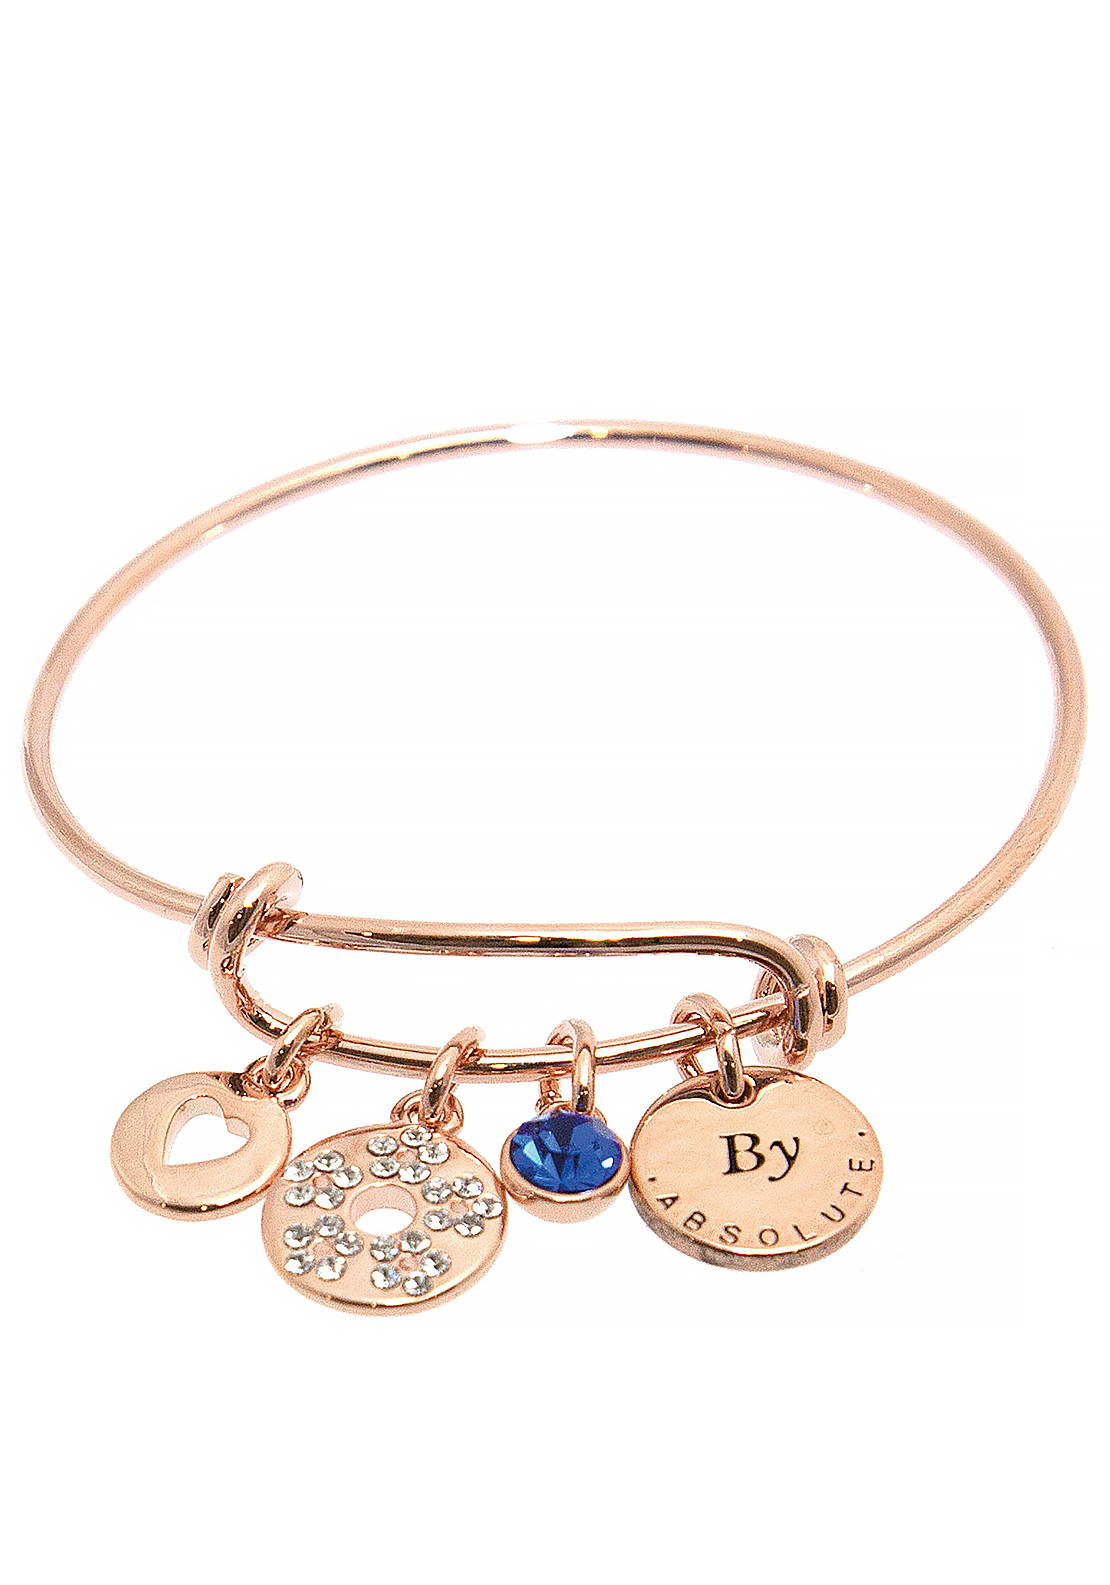 Absolute Jewellery Girls September Charm Bangle, Rose Gold